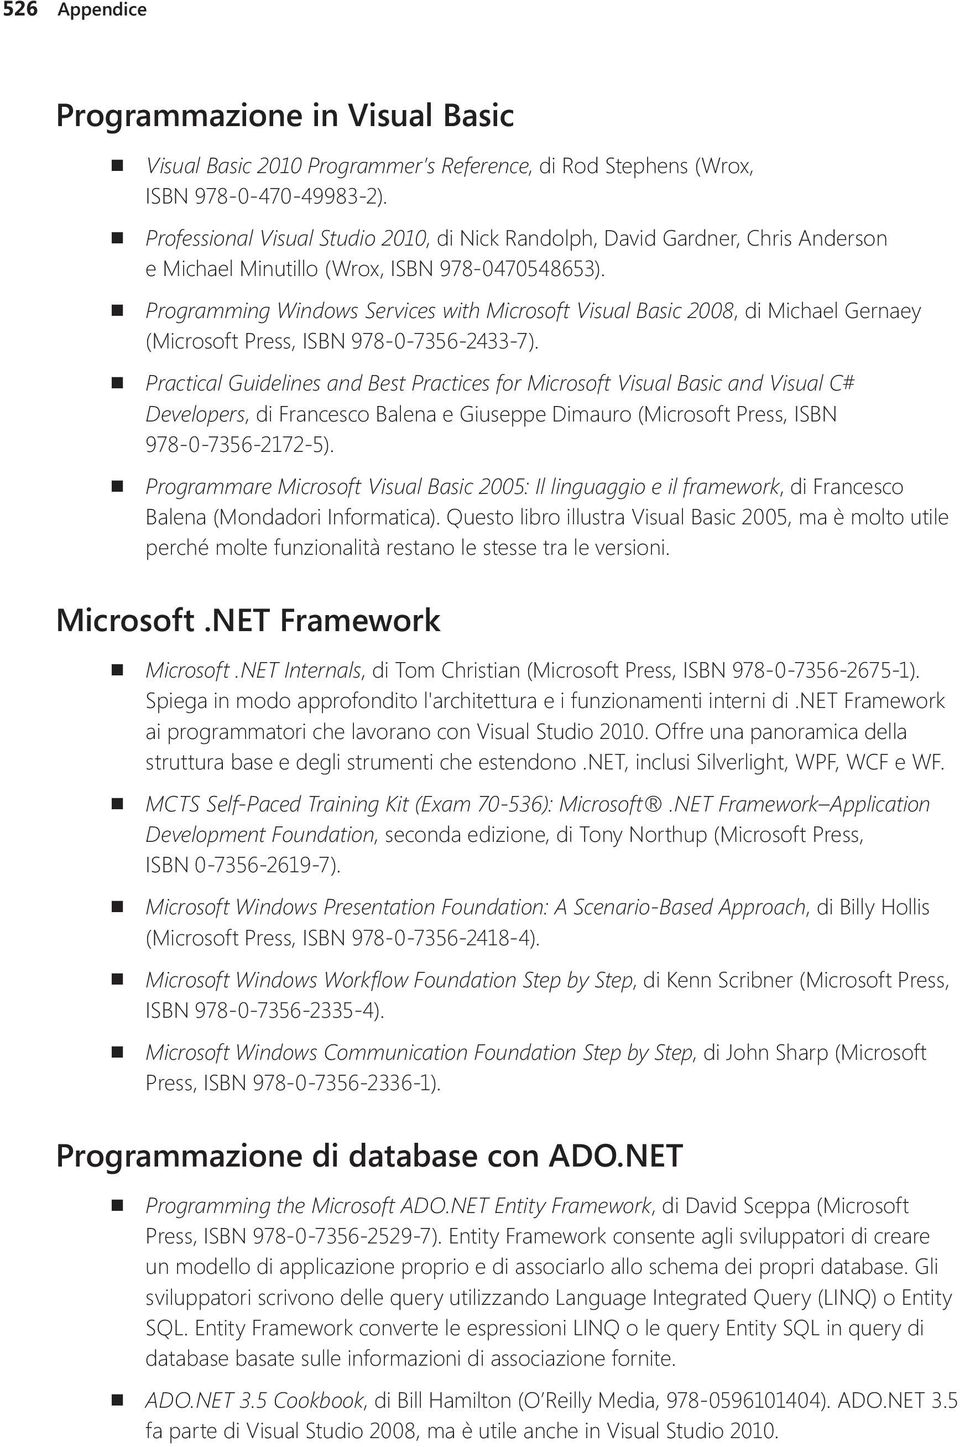 Programming Windows Services with Microsoft Visual Basic 2008, di Michael Gernaey (Microsoft Press, ISBN 978-0-7356-2433-7).